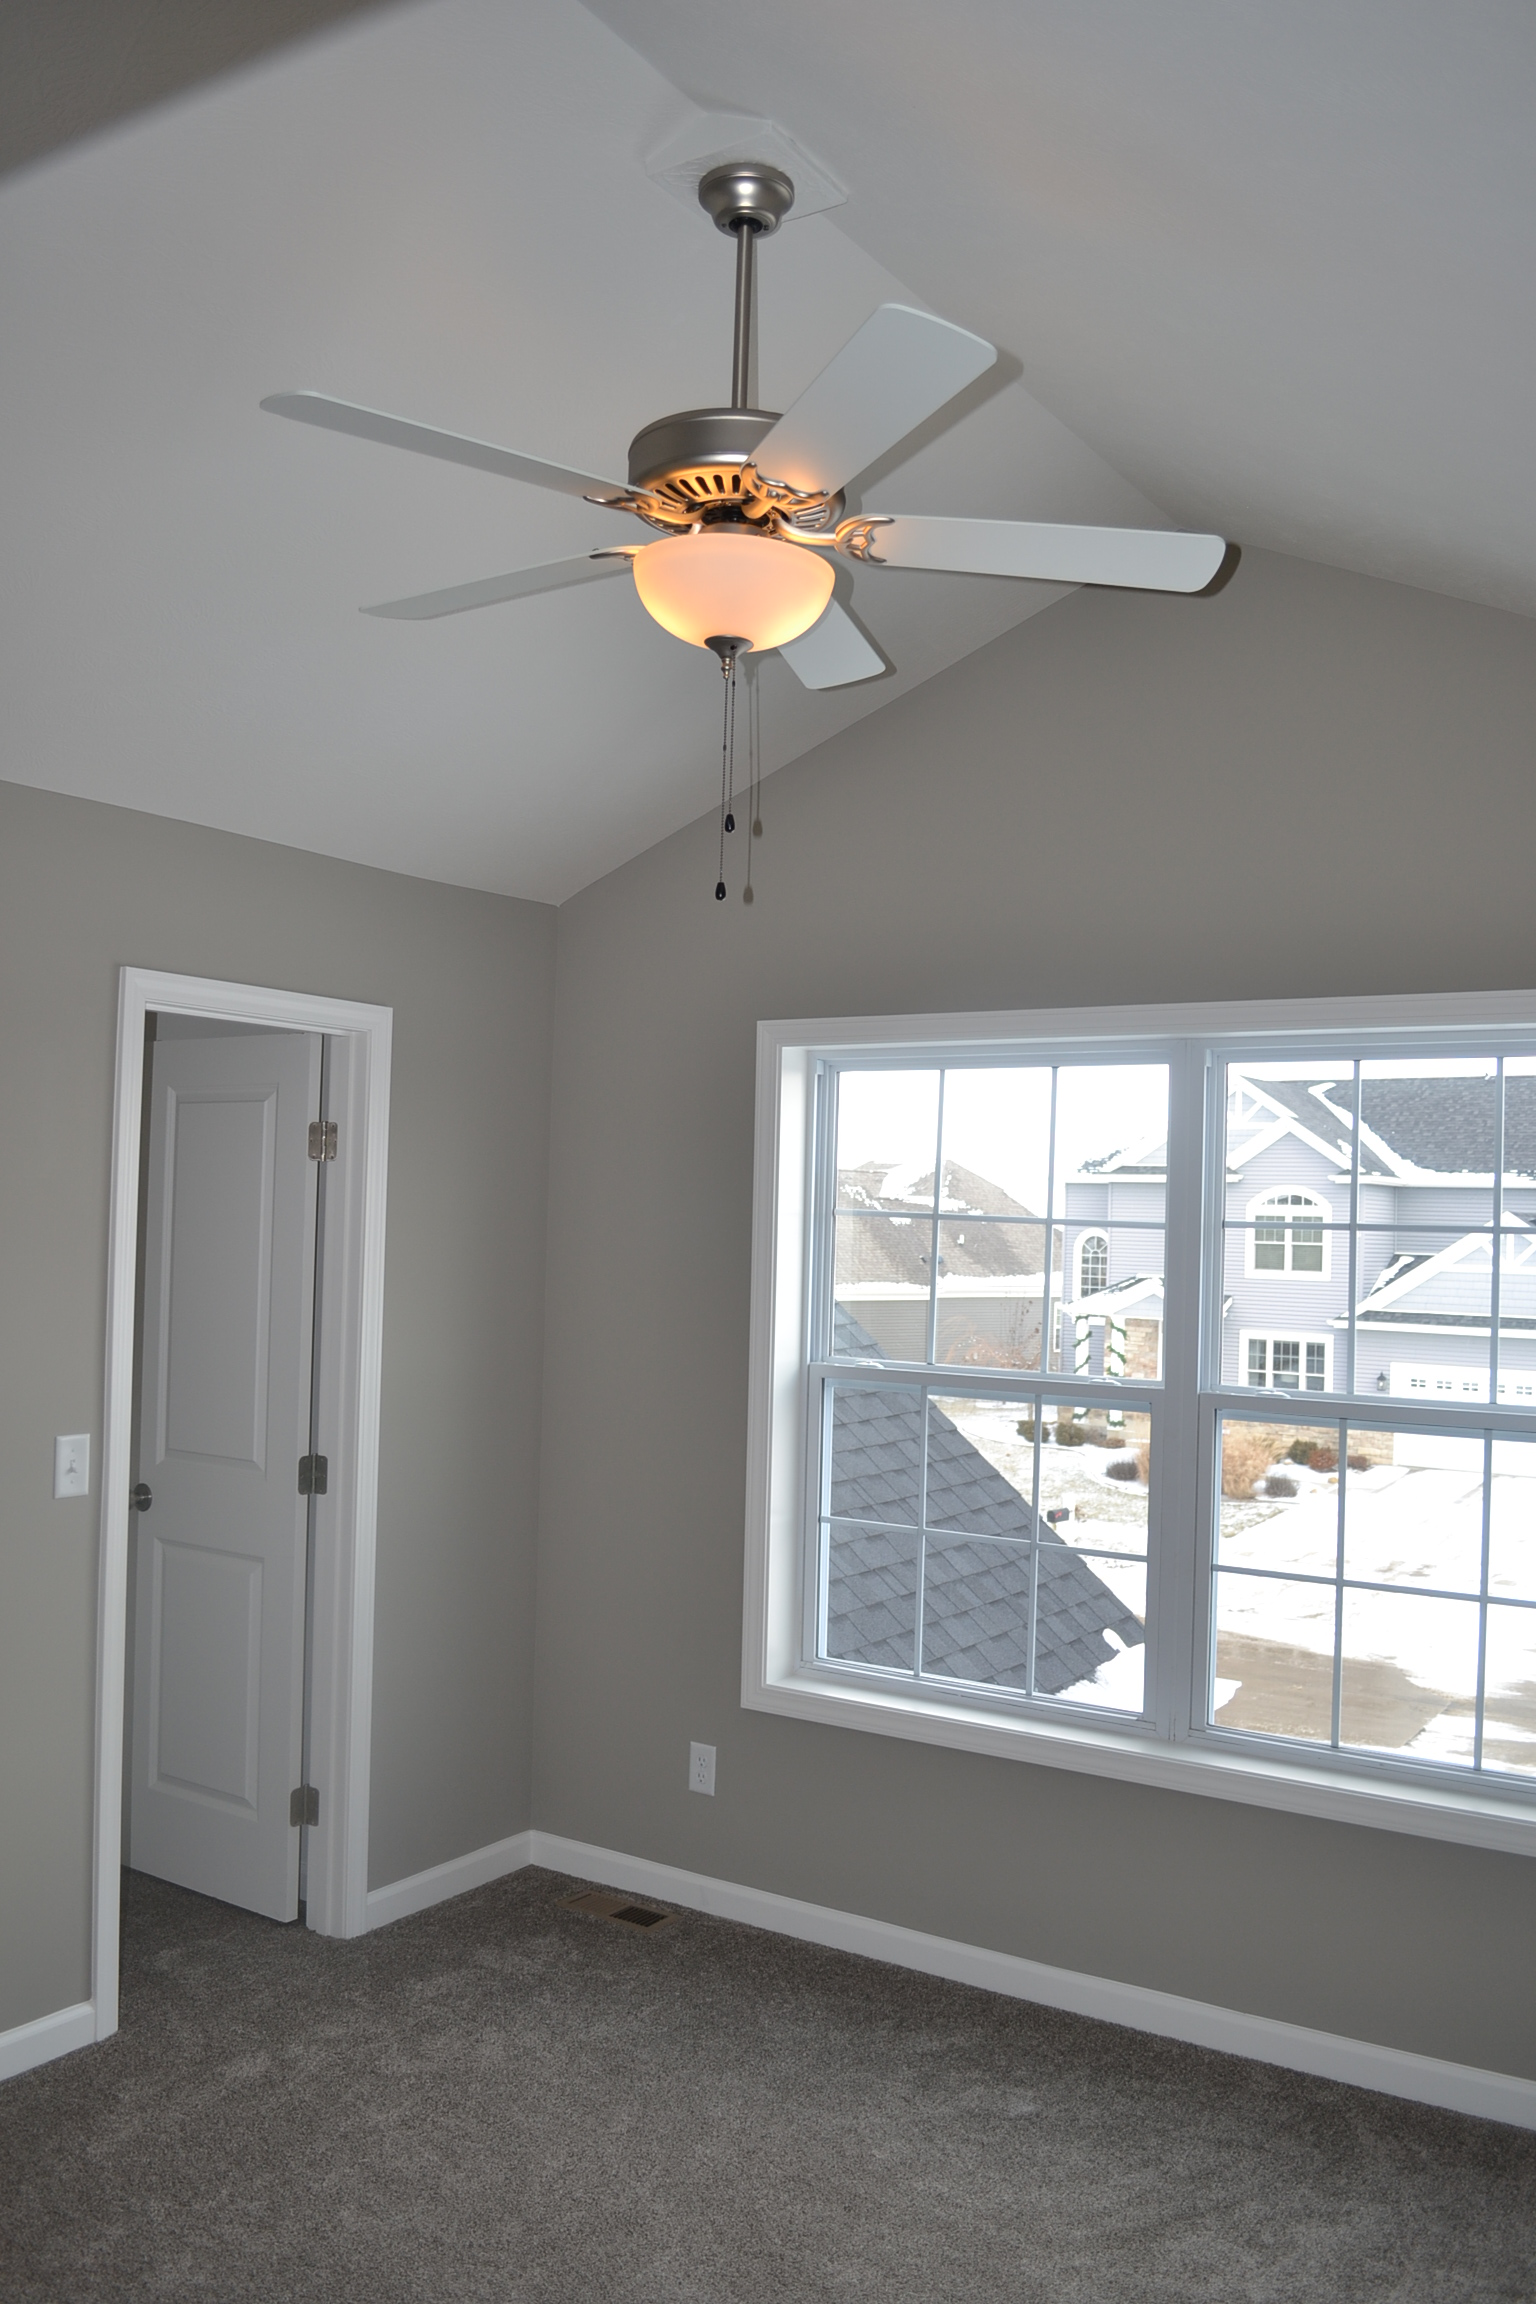 New Home in Champaign with ceiling fans